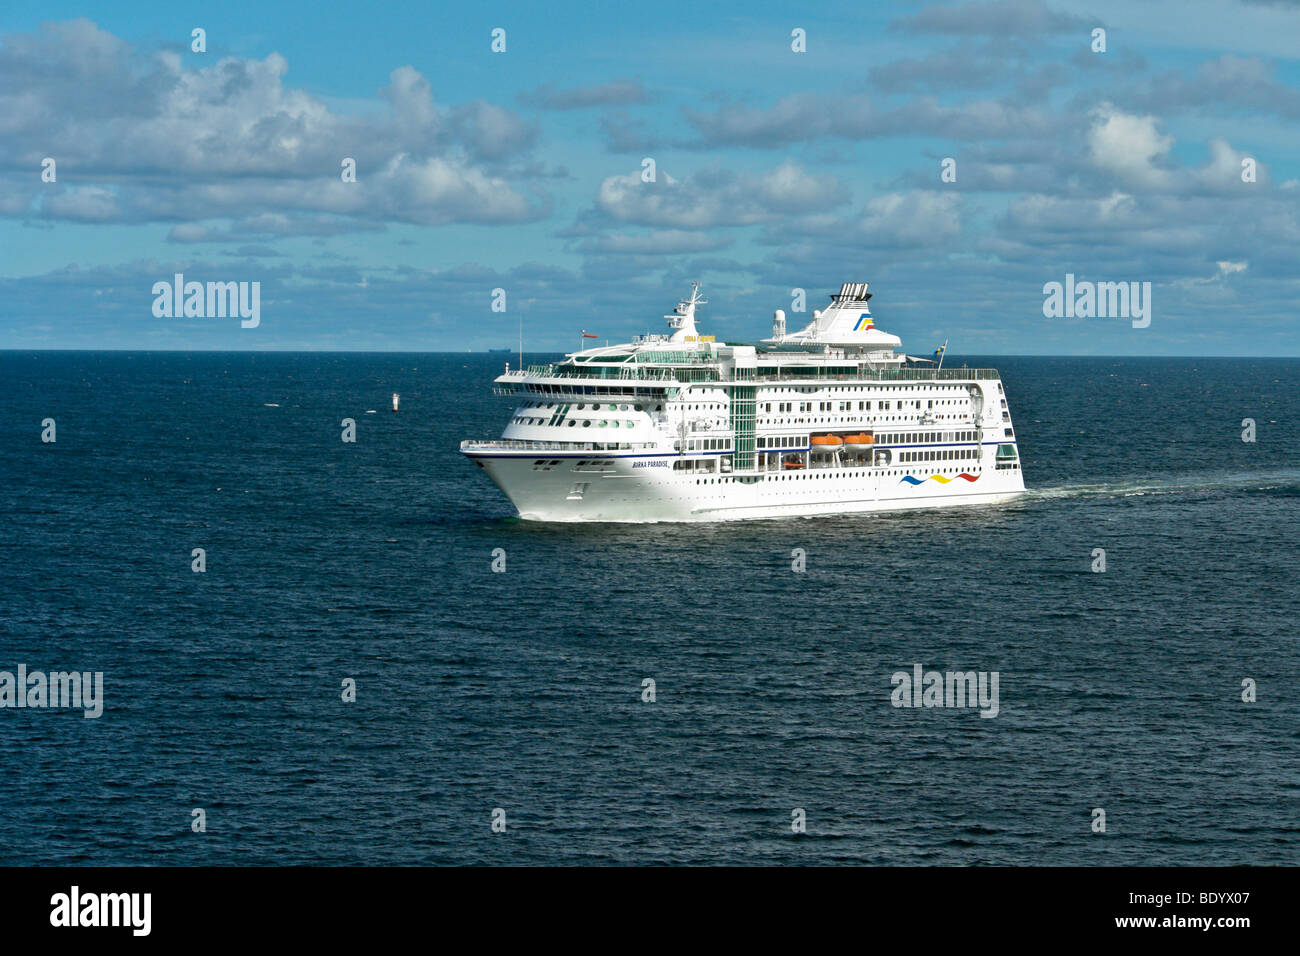 The Birka Line Baltic cruise ship Birka Paradise crosses the Aaland Sea in the Baltic from Mariehamn to Stockholm Stock Photo